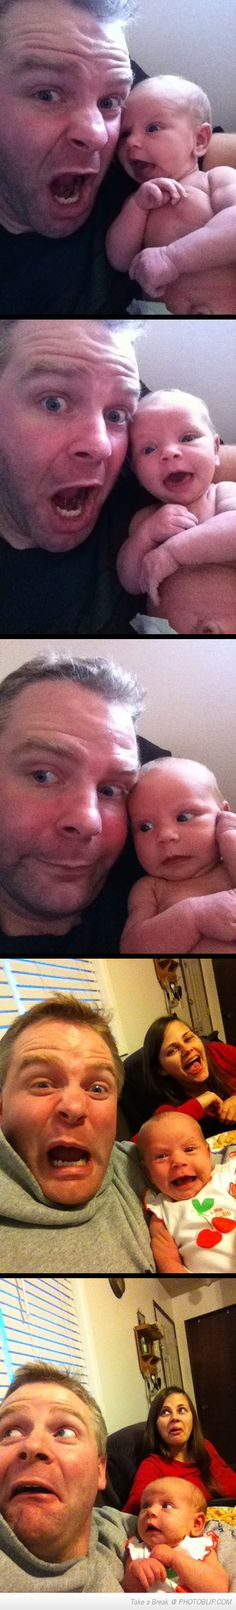 This Dad Taking Selfies With His Newborn Is The Cutest Thing Youll See Today. Oh my gosssshh